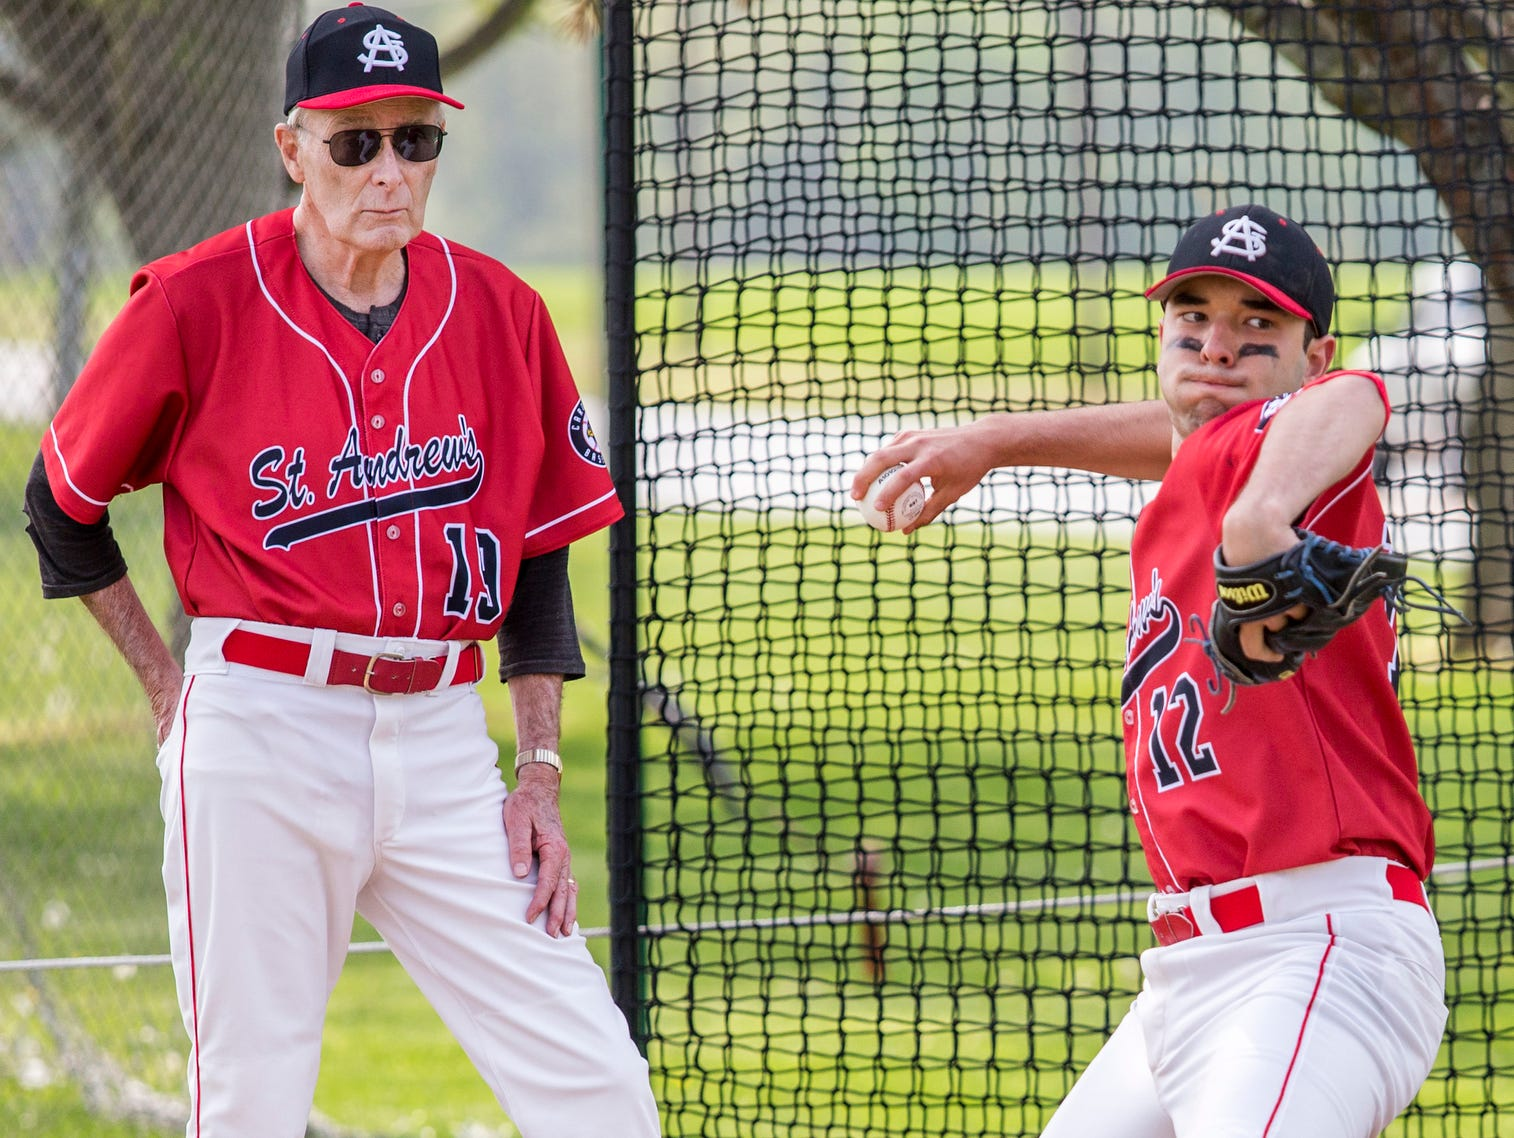 St. Andrew's head coach Bob Colburn watches as starting pitcher Colin Cool warms up before the start of a game at St. Andrew's School in Middletown on Thursday afternoon.